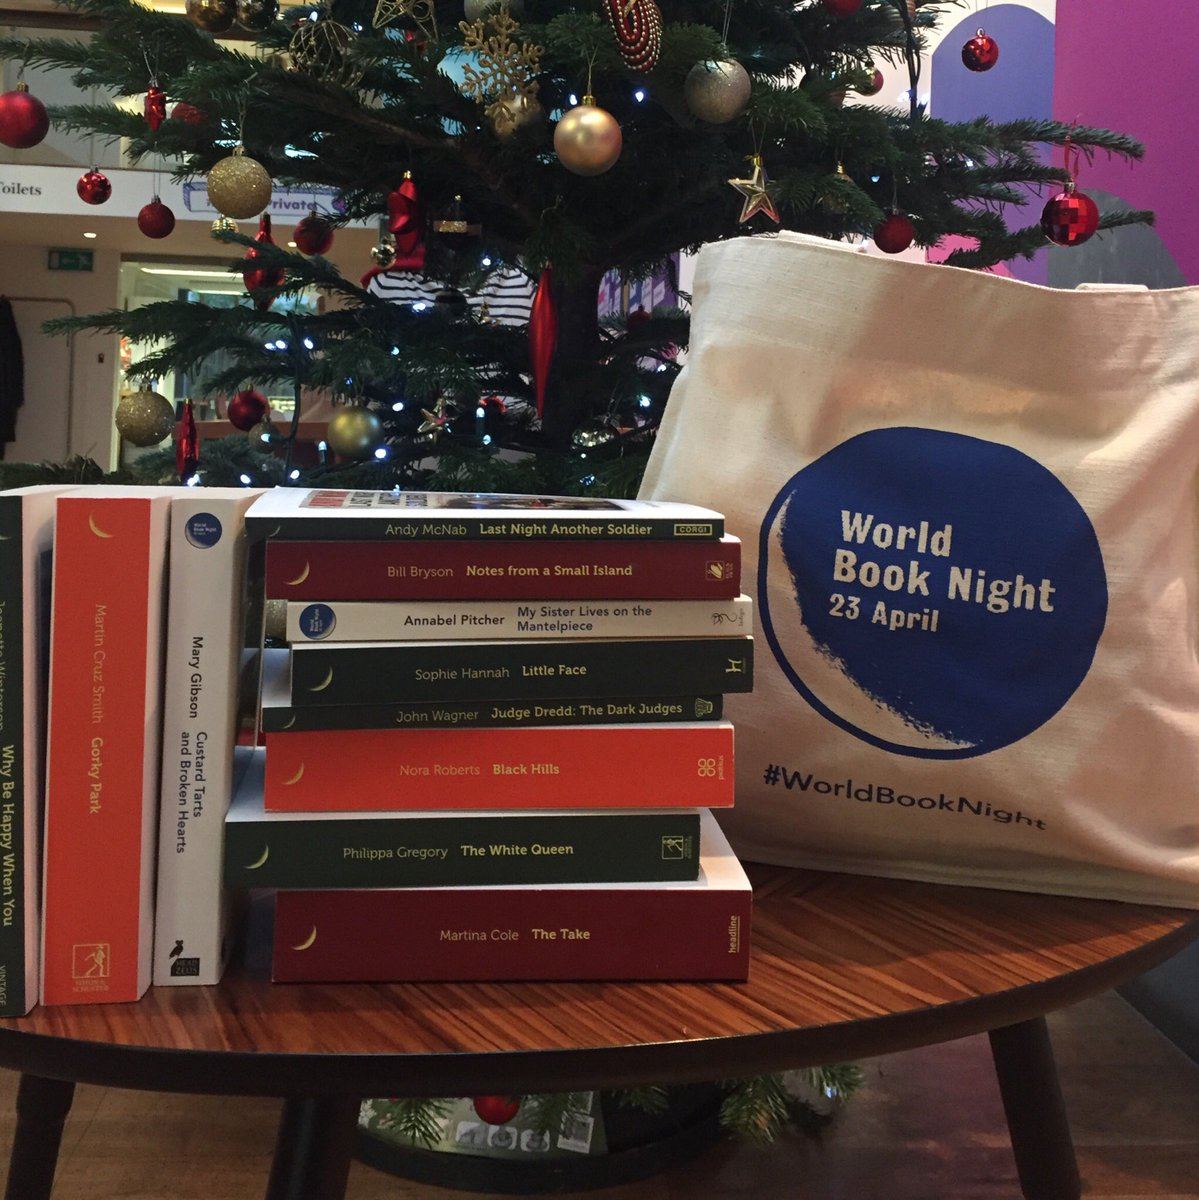 It's giveaway time! We're offering 3 lucky people a limited edition #WorldBookNight bag and a selection of titles from previous years. To enter, retweet and comment why you think World Book Night is important by 12pm Wednesday. UK entries only.